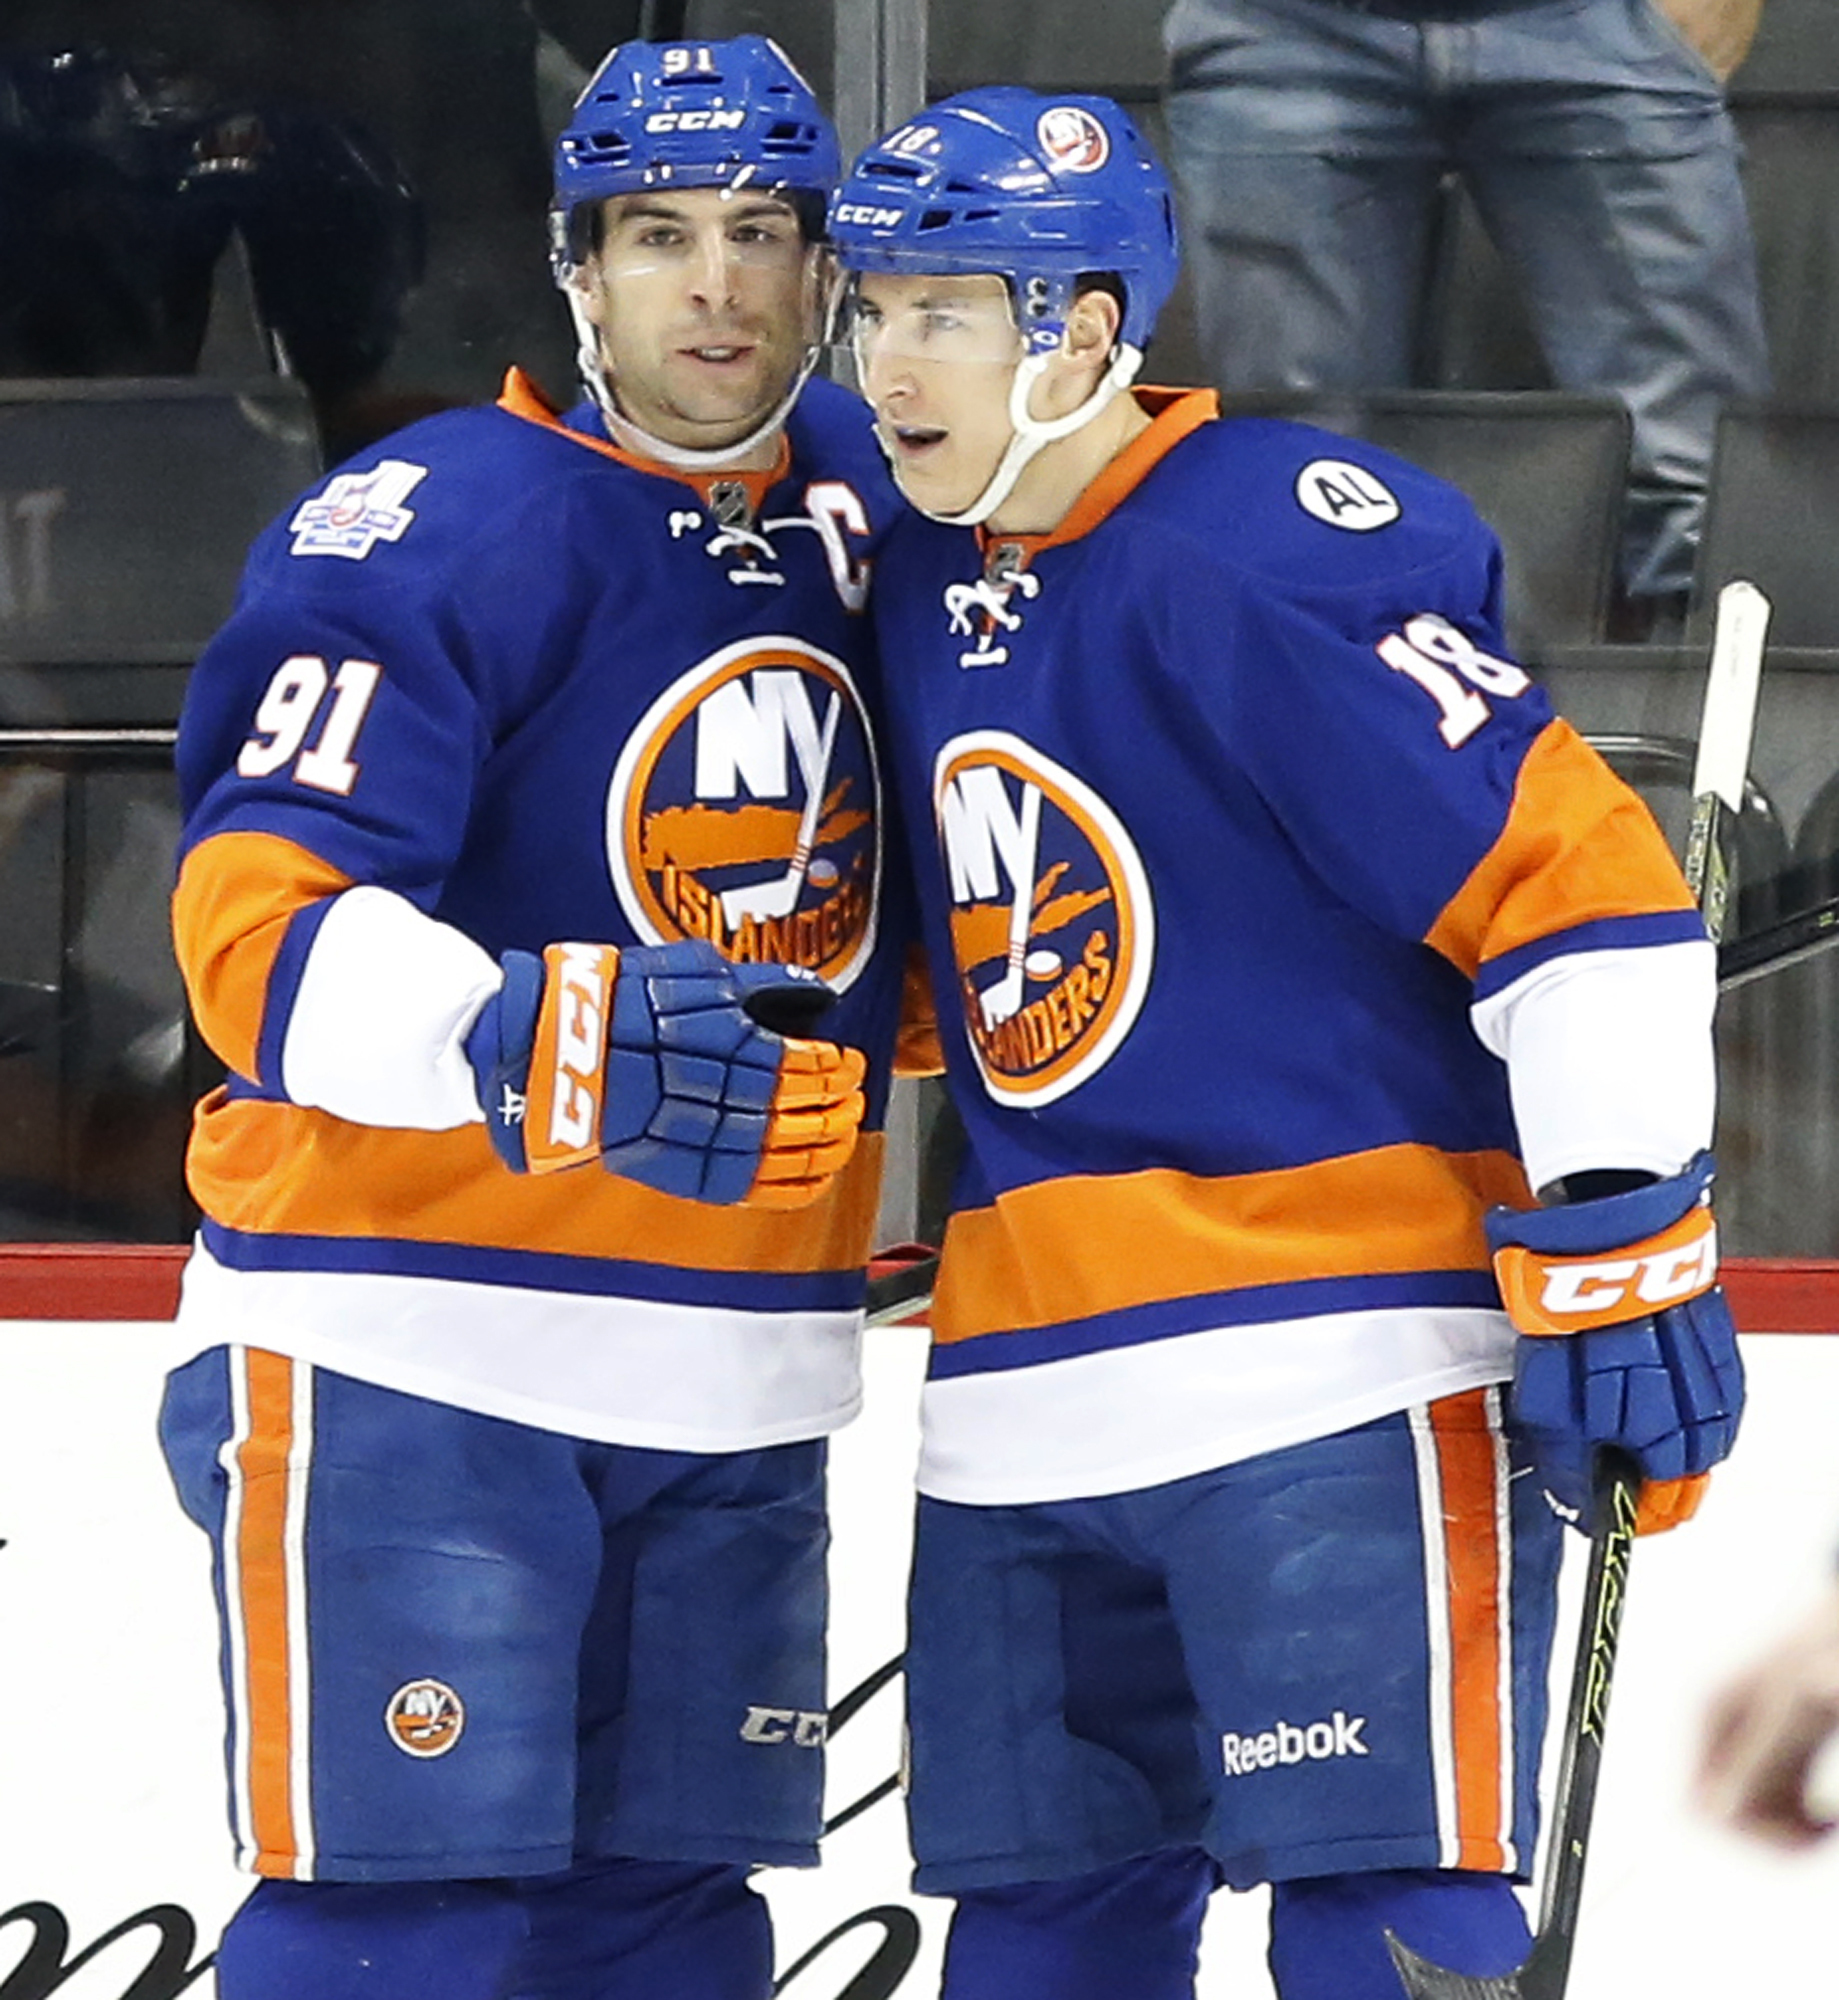 New York Islanders center John Tavares (91) and center Ryan Strome (18) celebrate Tavares' second goal in the first period of an NHL hockey game against the Columbus Blue Jackets in New York, Thursday, March 31, 2016. (AP Photo/Kathy Willens)